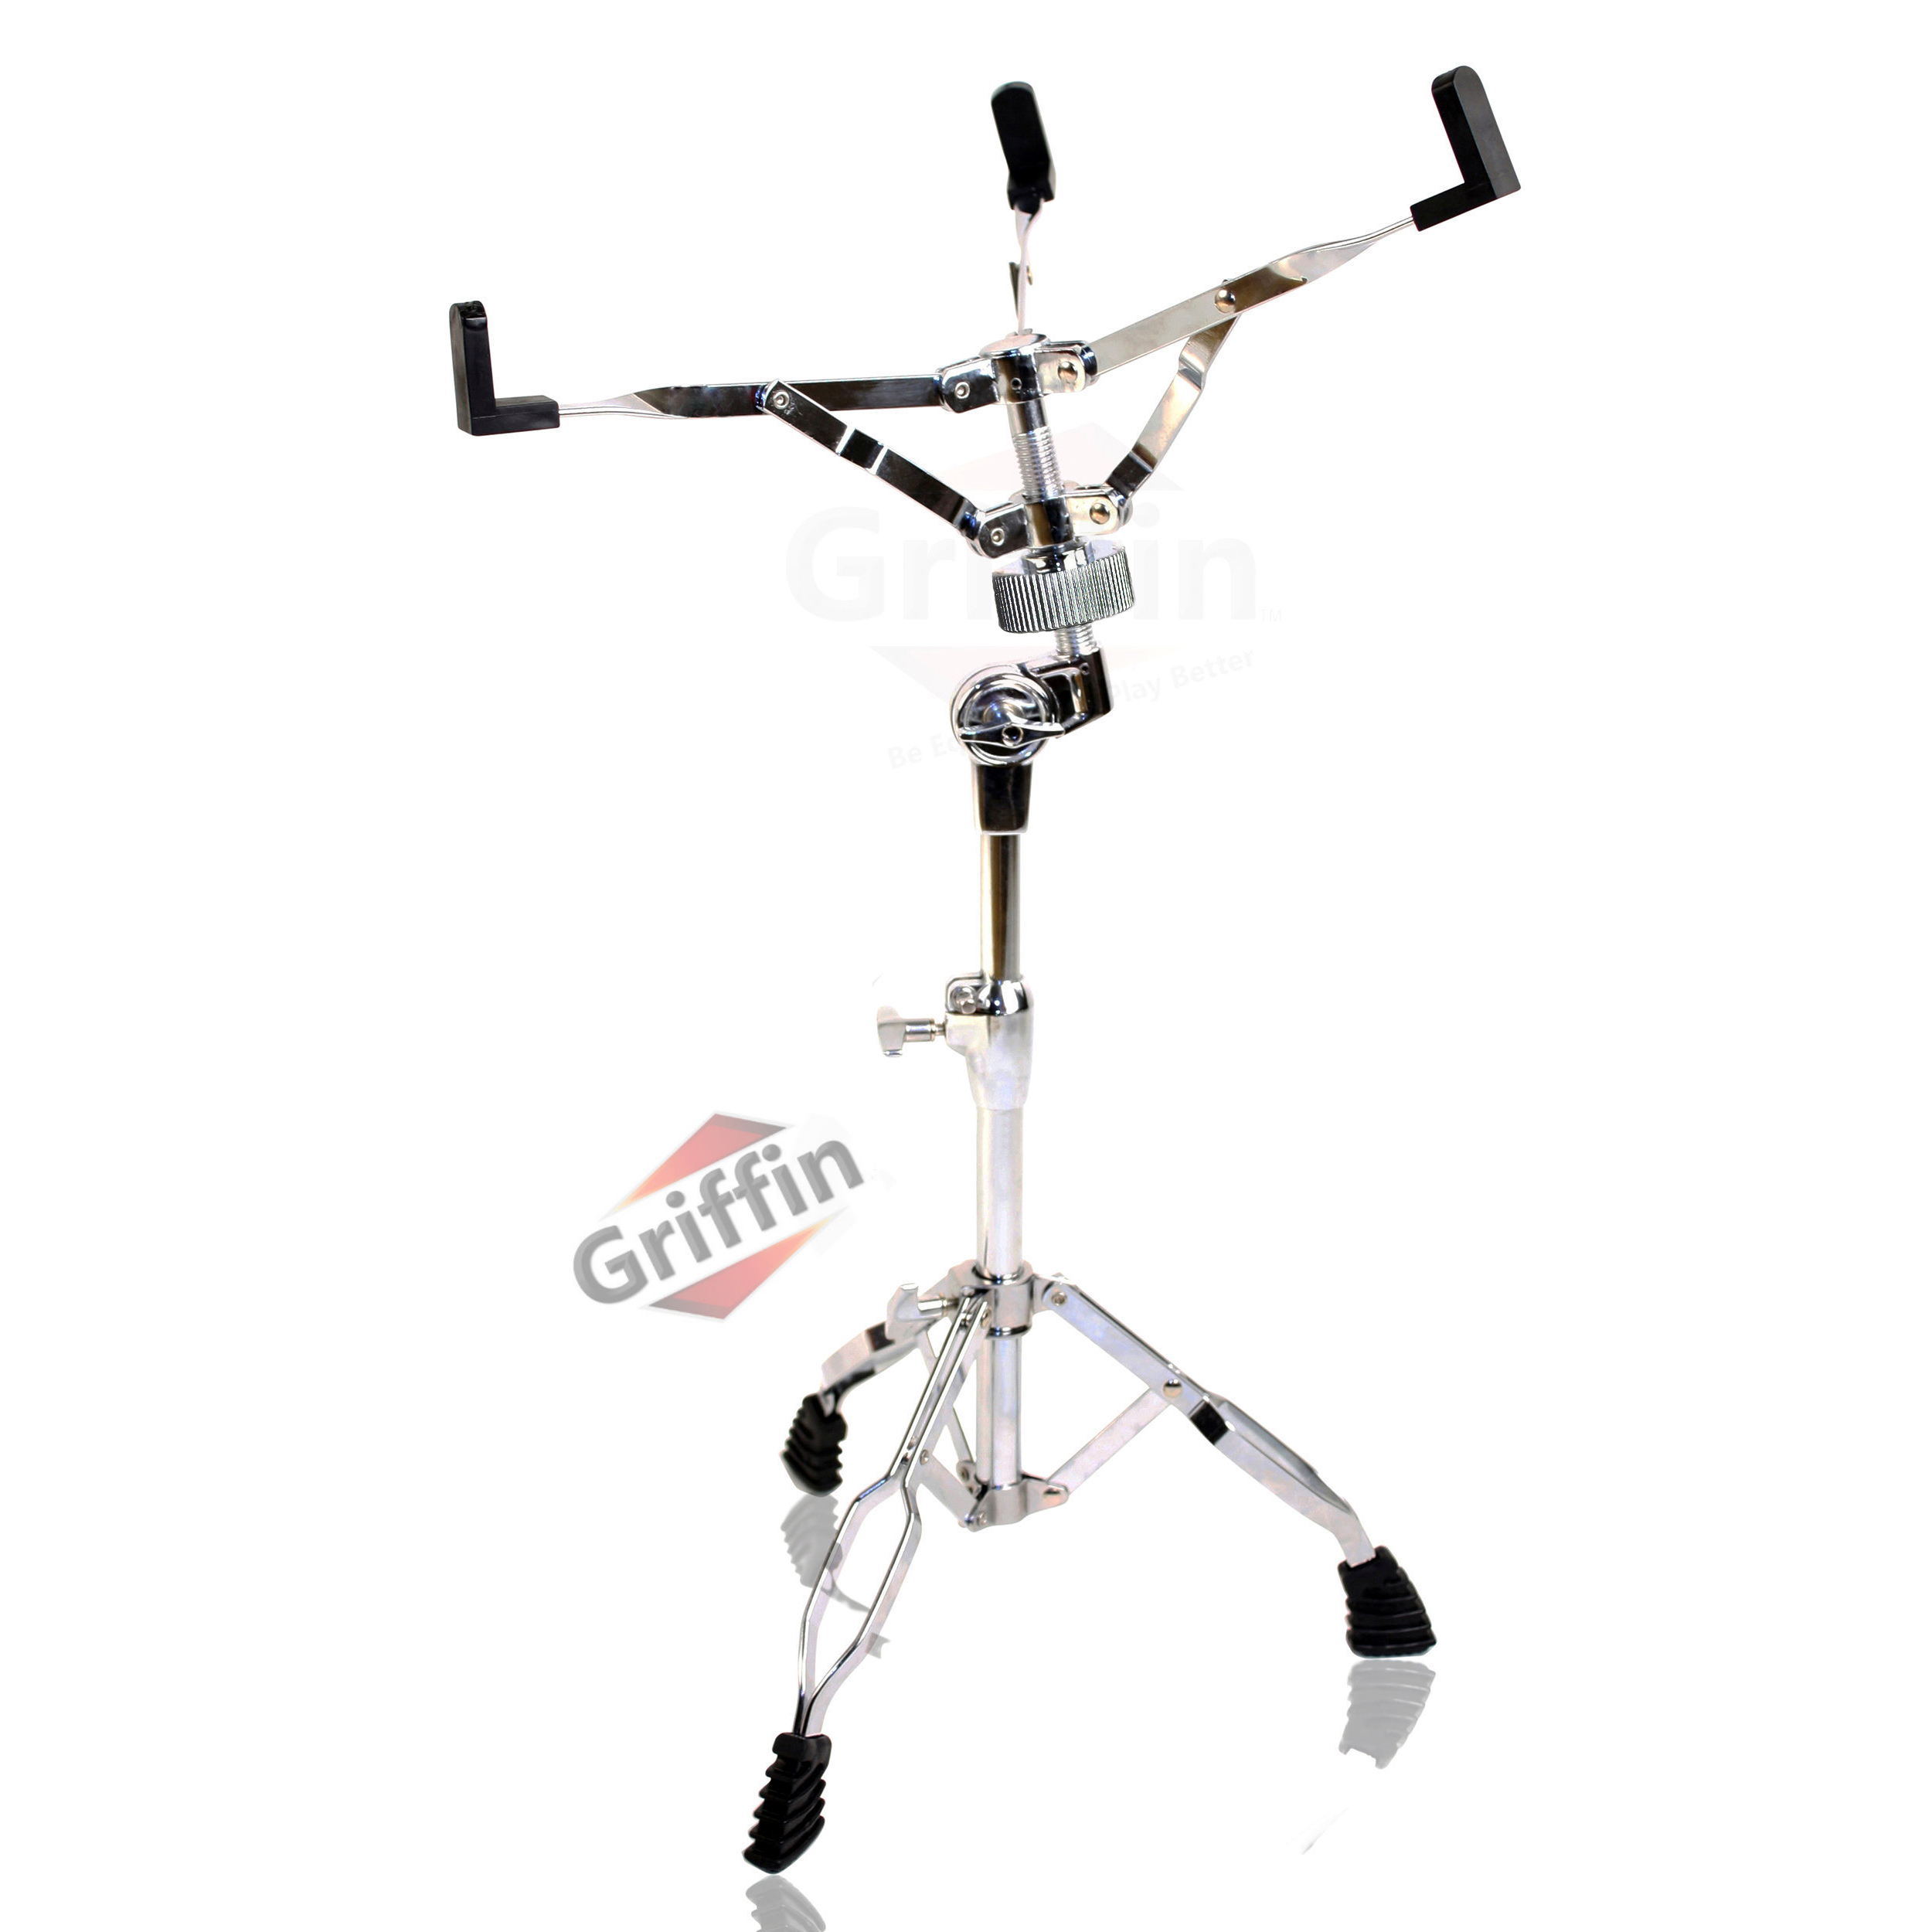 snare drum stand griffin chrome hardware percussion tom holder mount adapter 797734483758 ebay. Black Bedroom Furniture Sets. Home Design Ideas